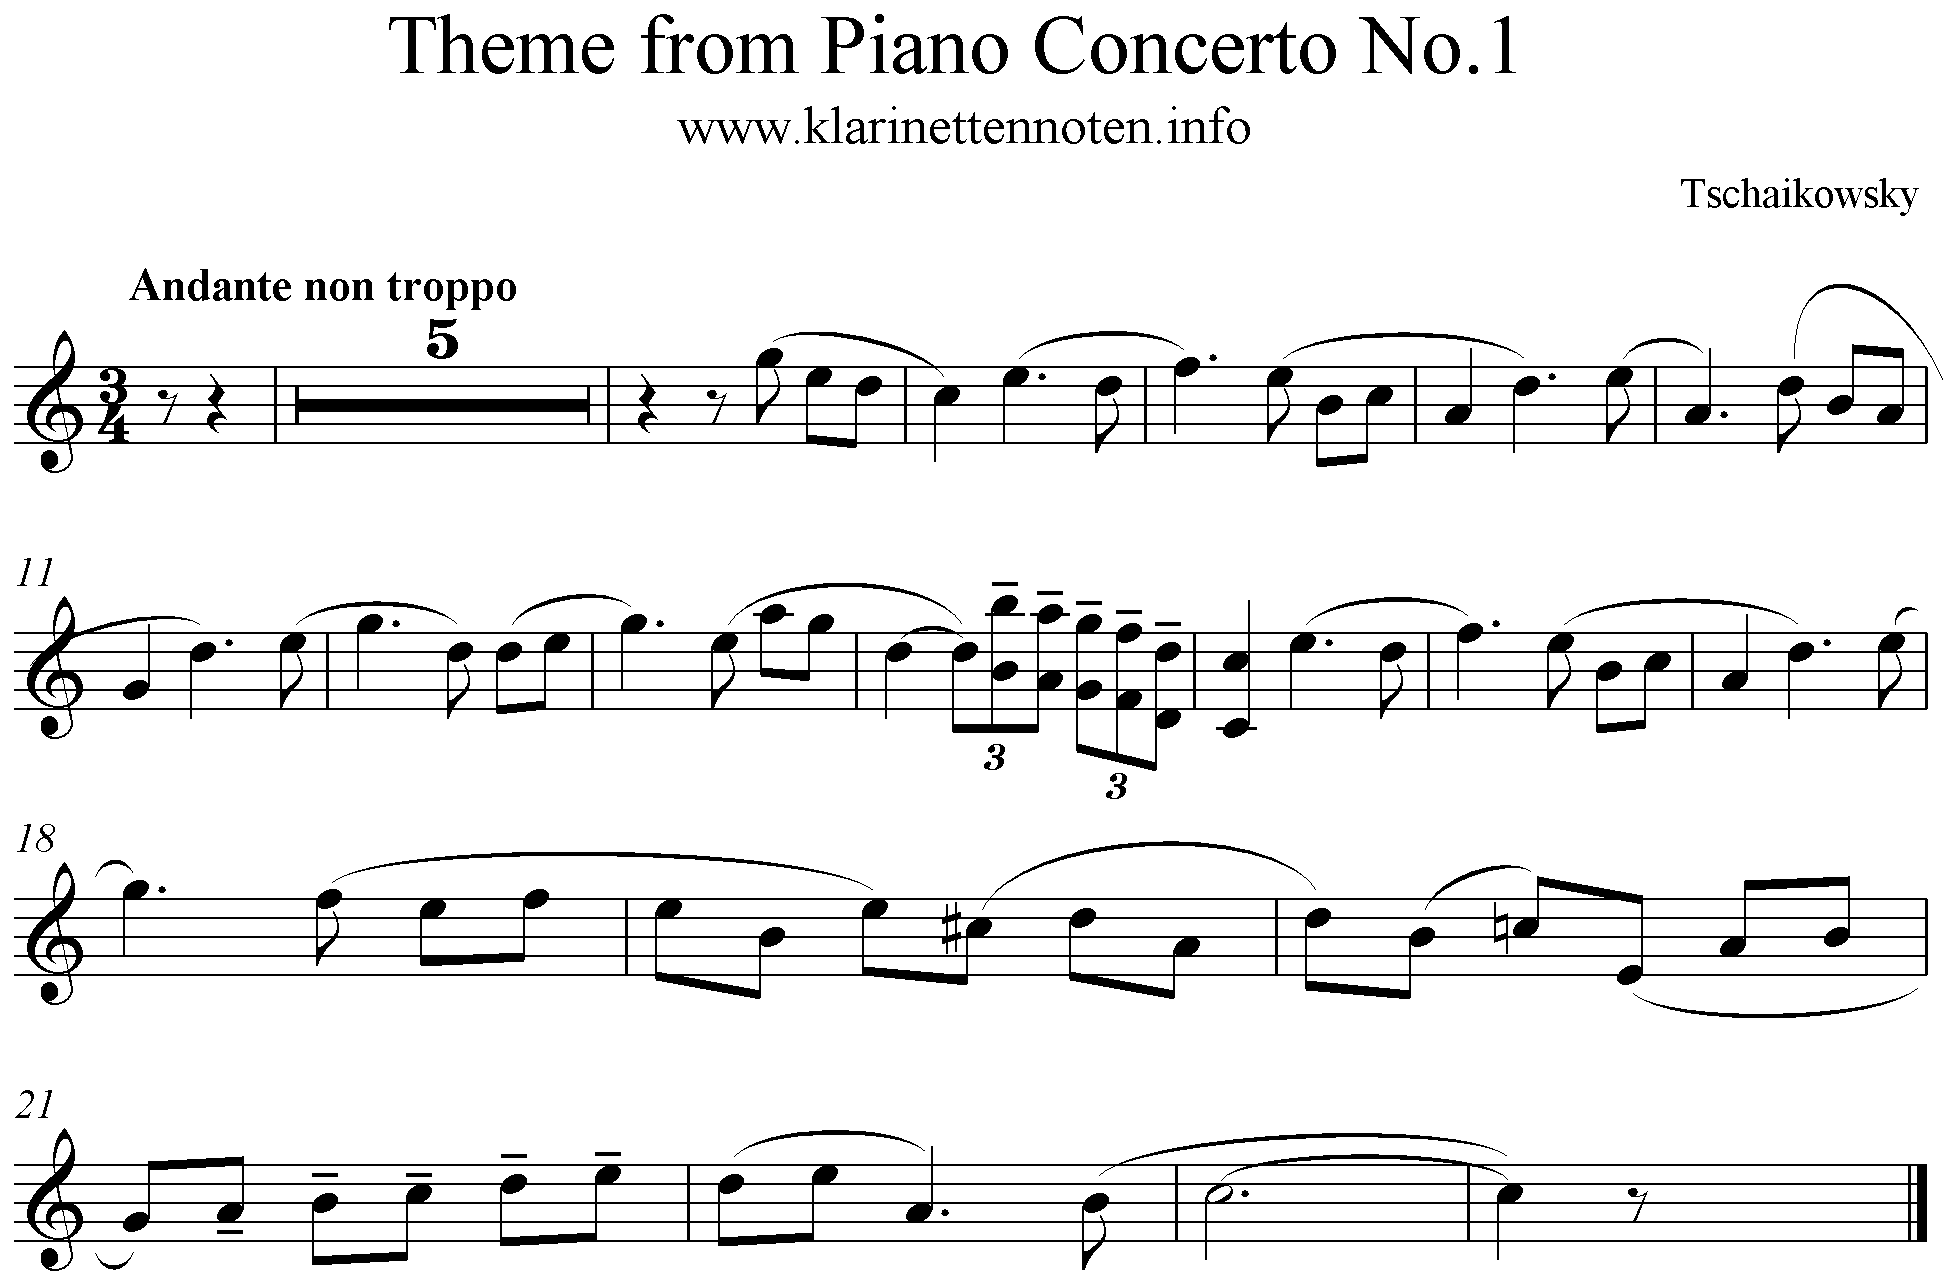 Theme from Piano Concerto No. 1 Tschaikowsky